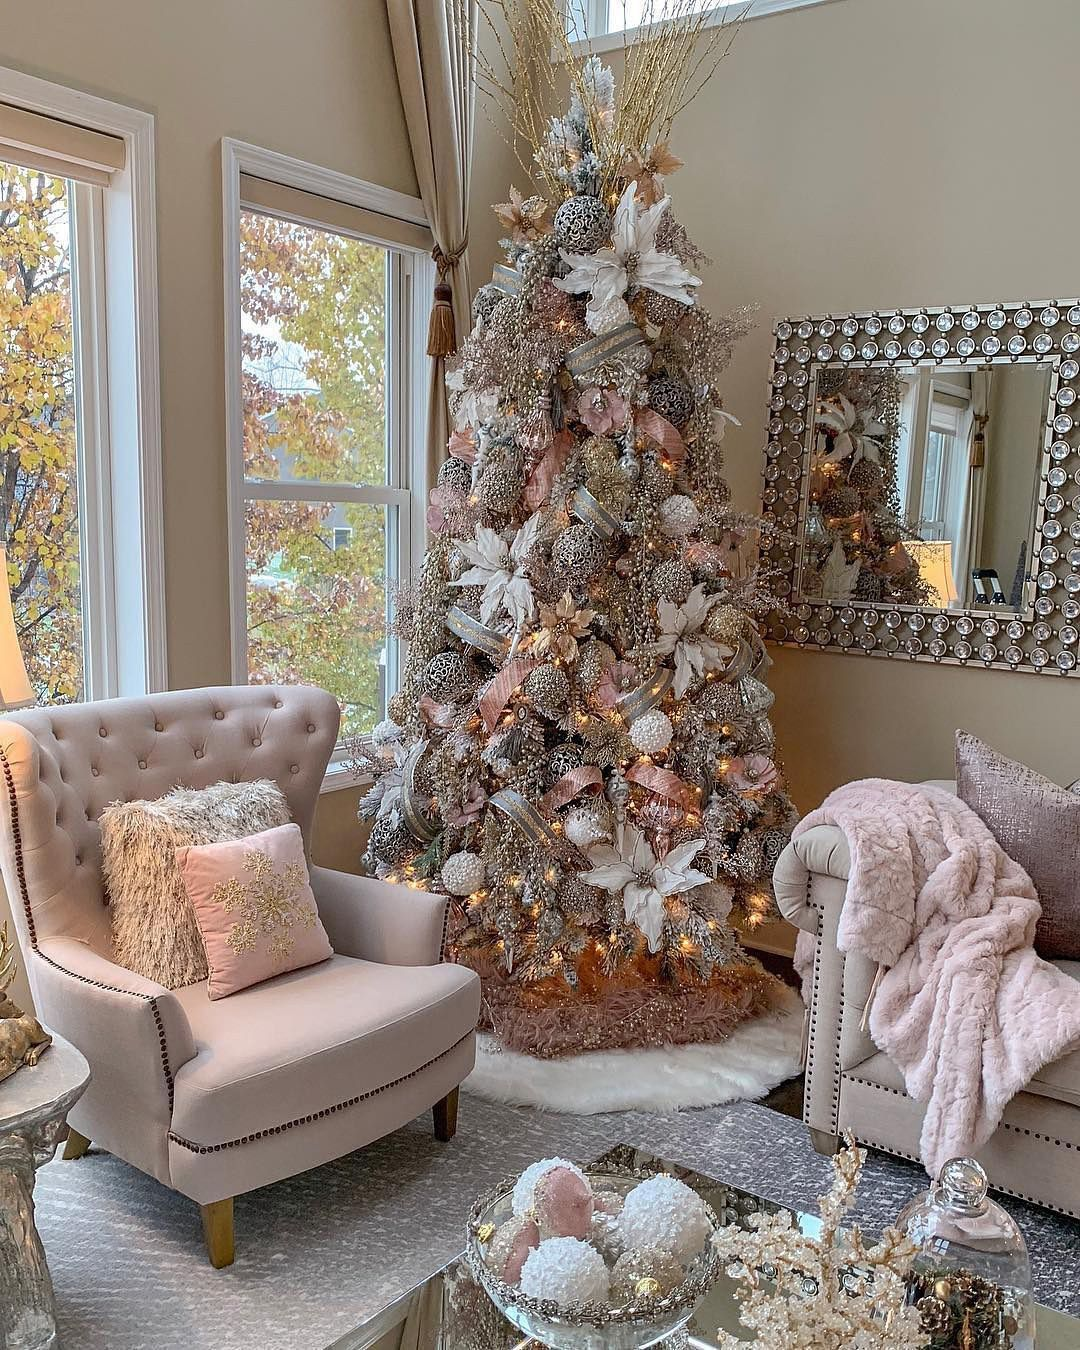 Holiday Home Tours Images Of Homes Decorated For Christmas Christmas Home Beautiful Christmas Trees Beautiful Christmas